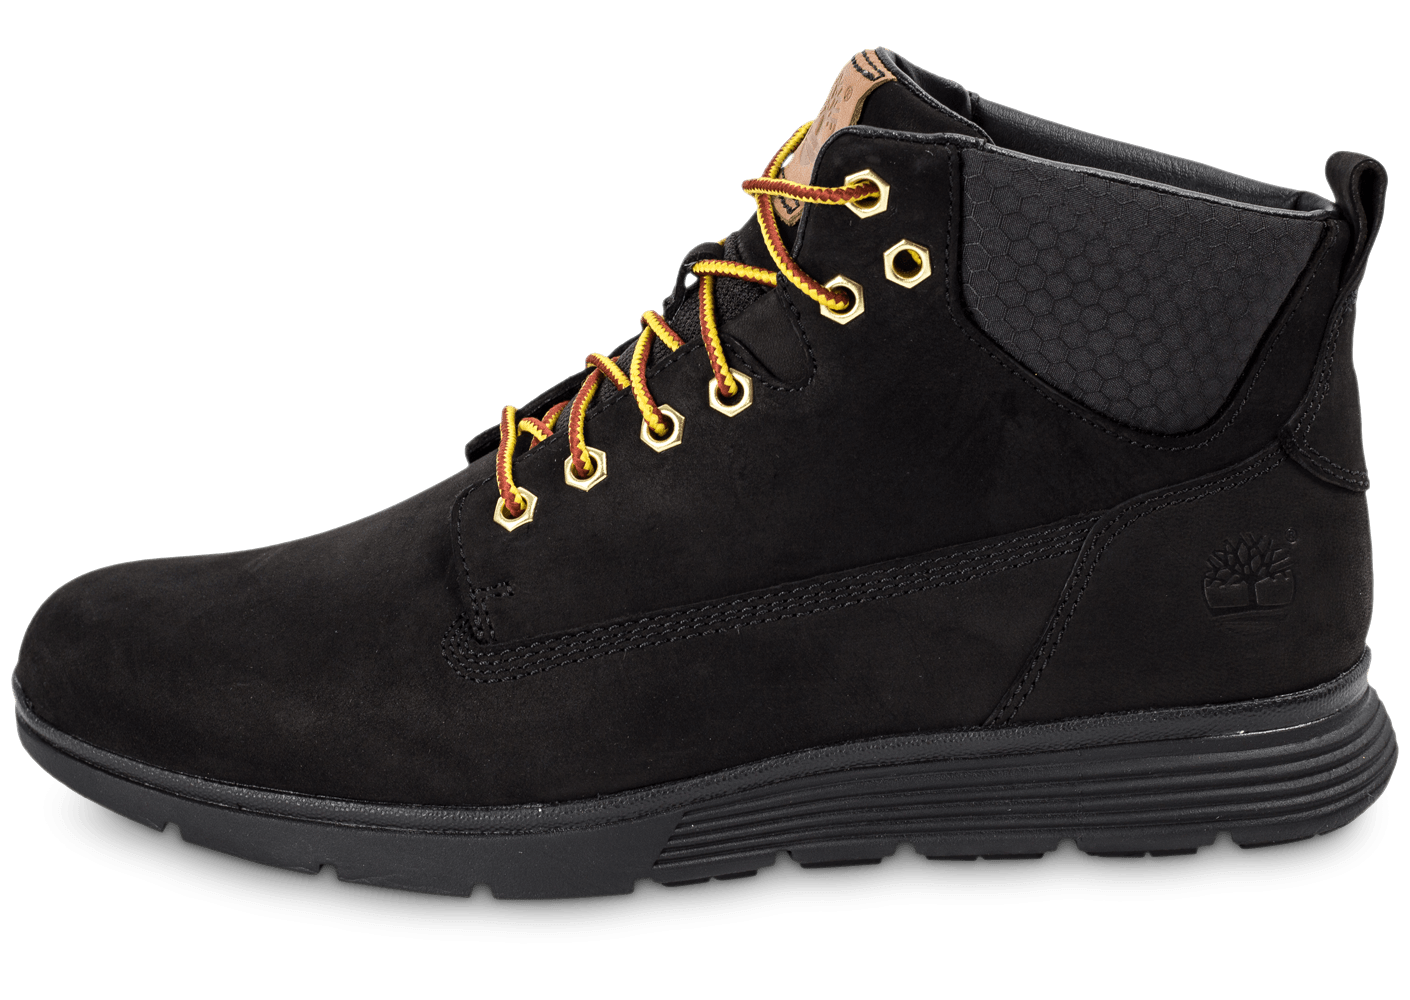 timberland killington chukka noire chaussures homme chausport. Black Bedroom Furniture Sets. Home Design Ideas